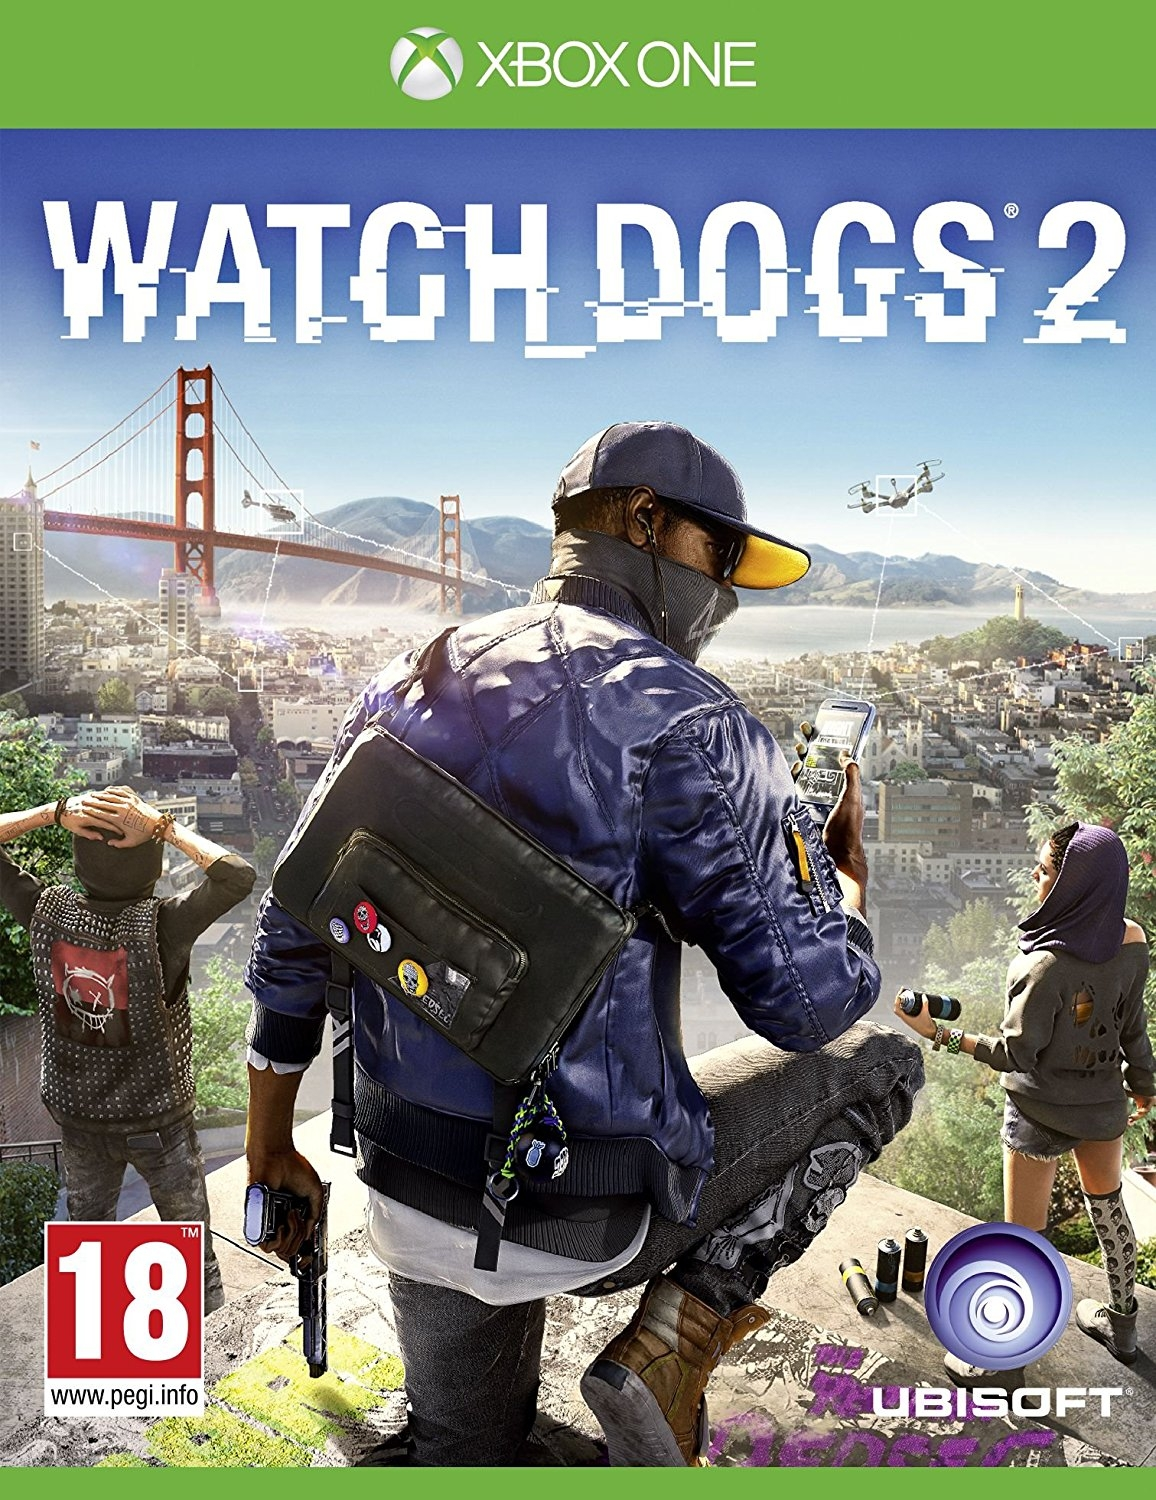 XBOXOne Watch Dogs 2